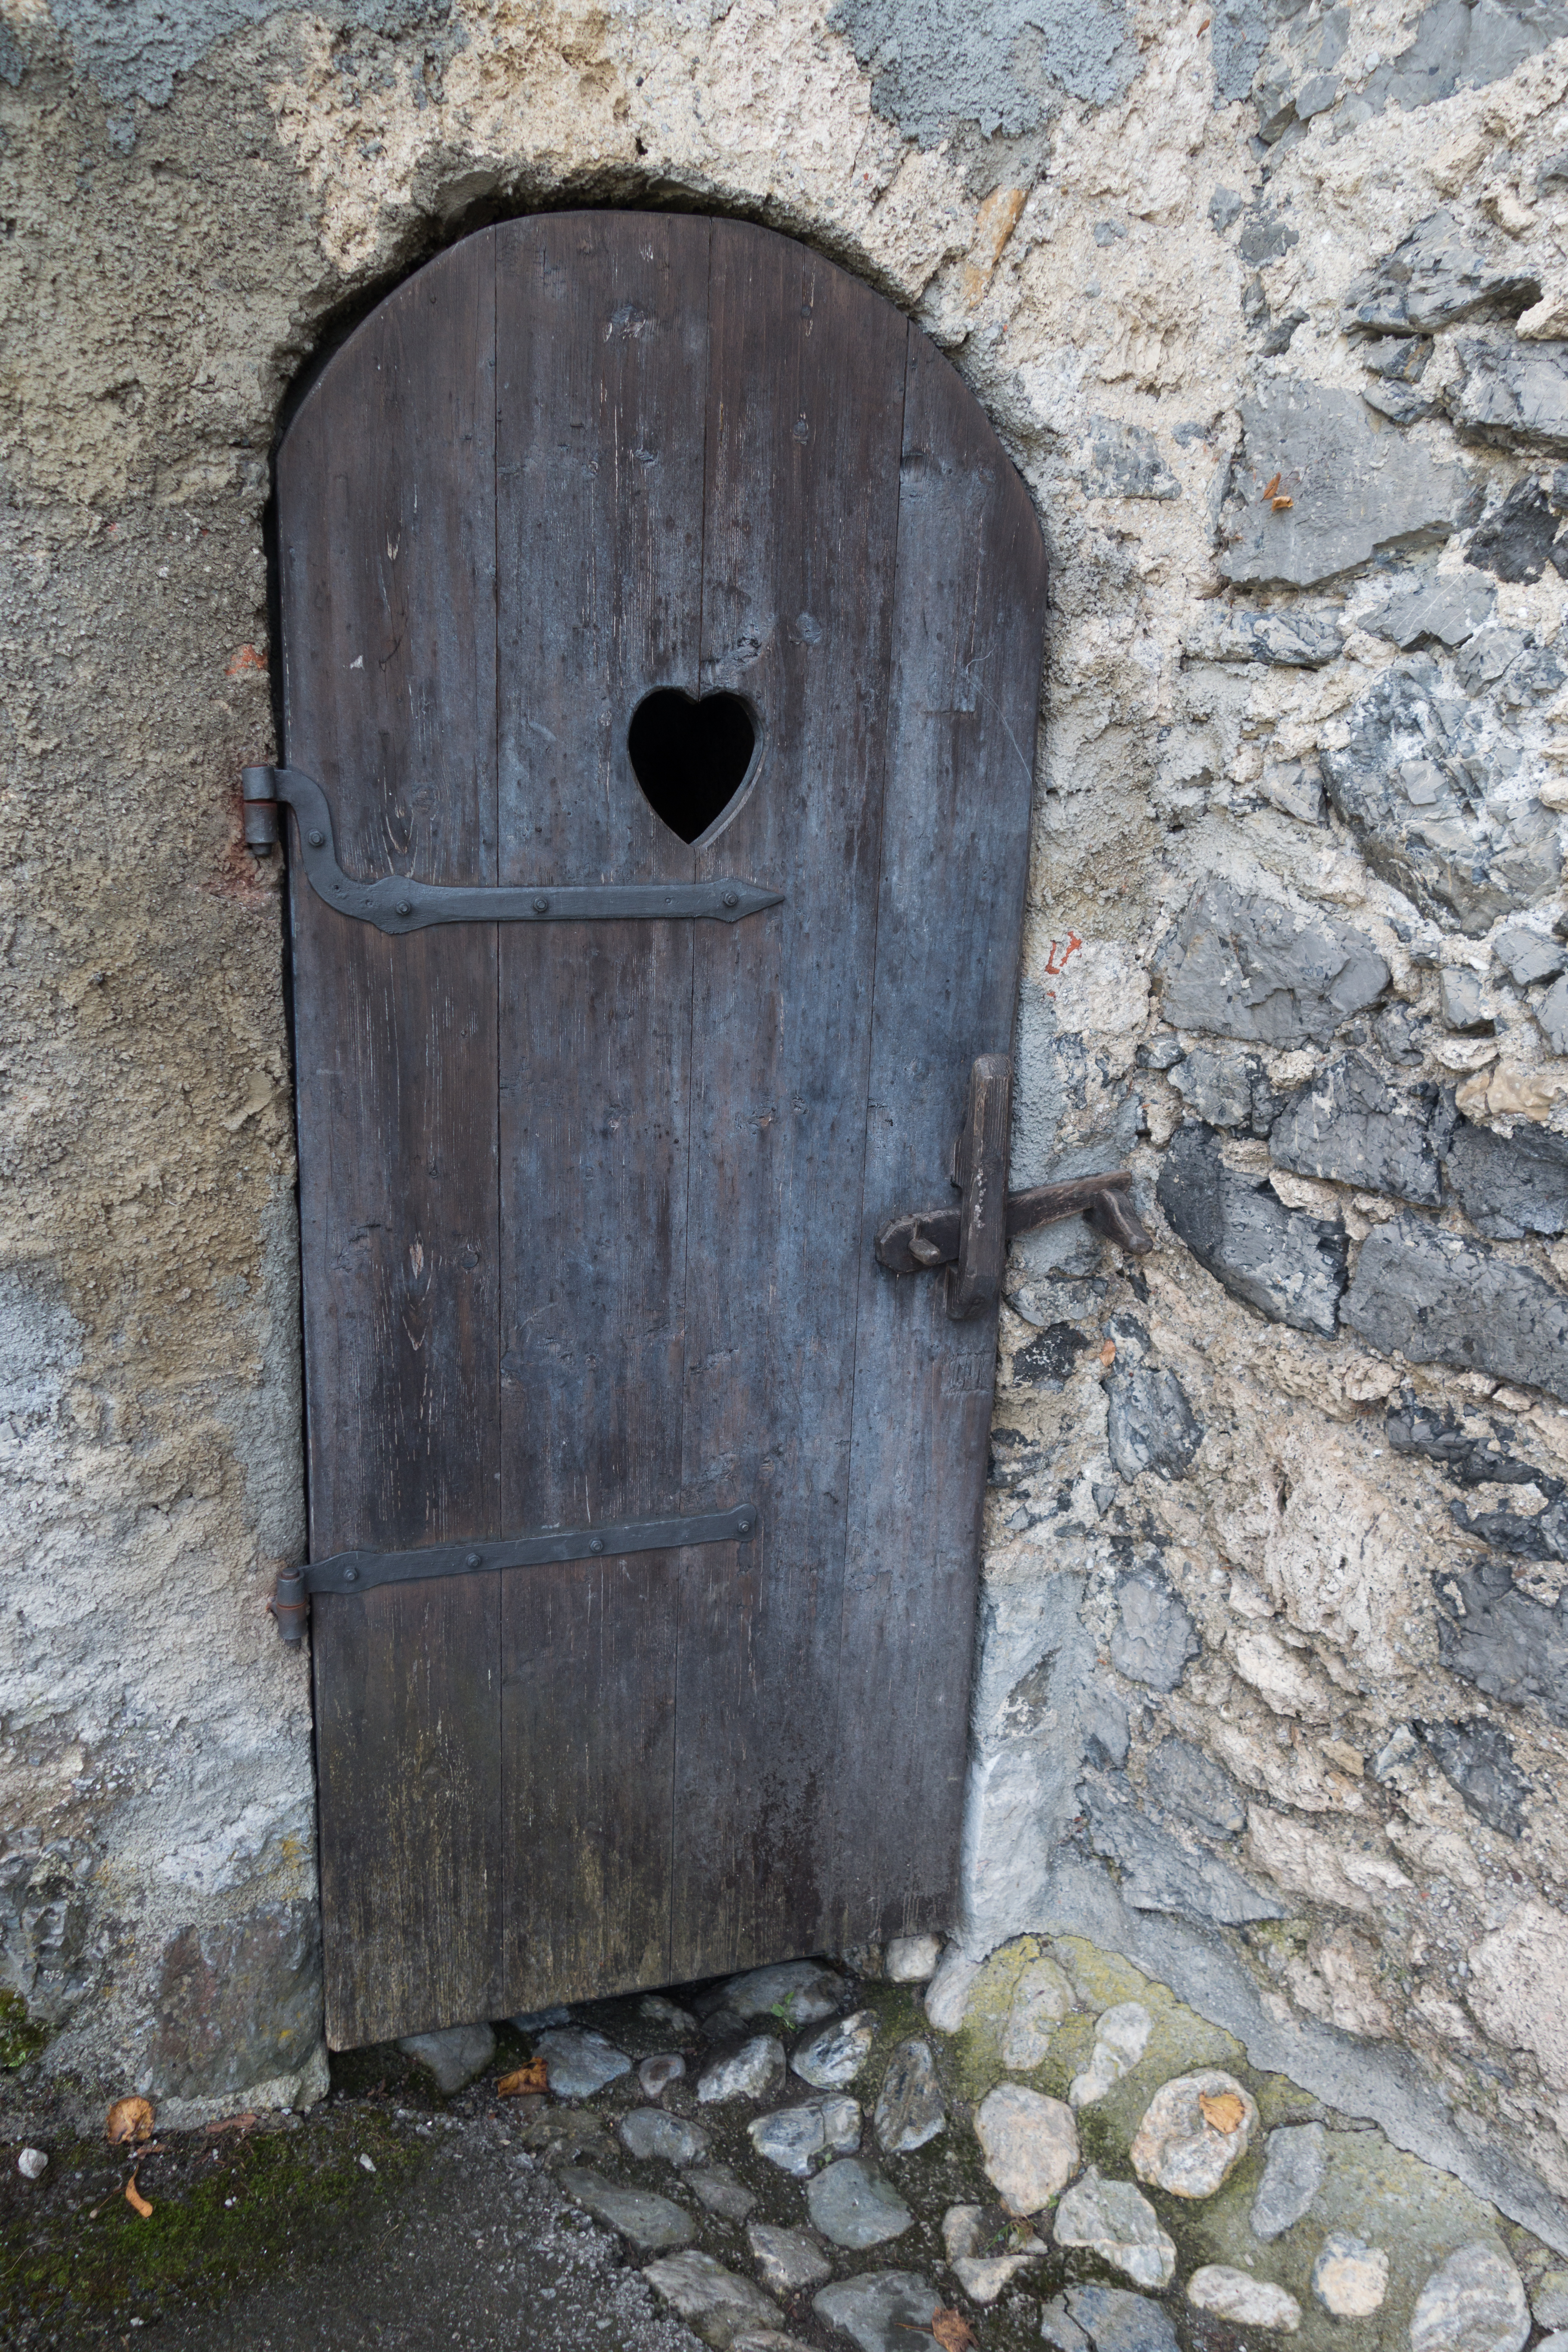 FileCastle outhouse door (27410381340).jpg & File:Castle outhouse door (27410381340).jpg - Wikimedia Commons